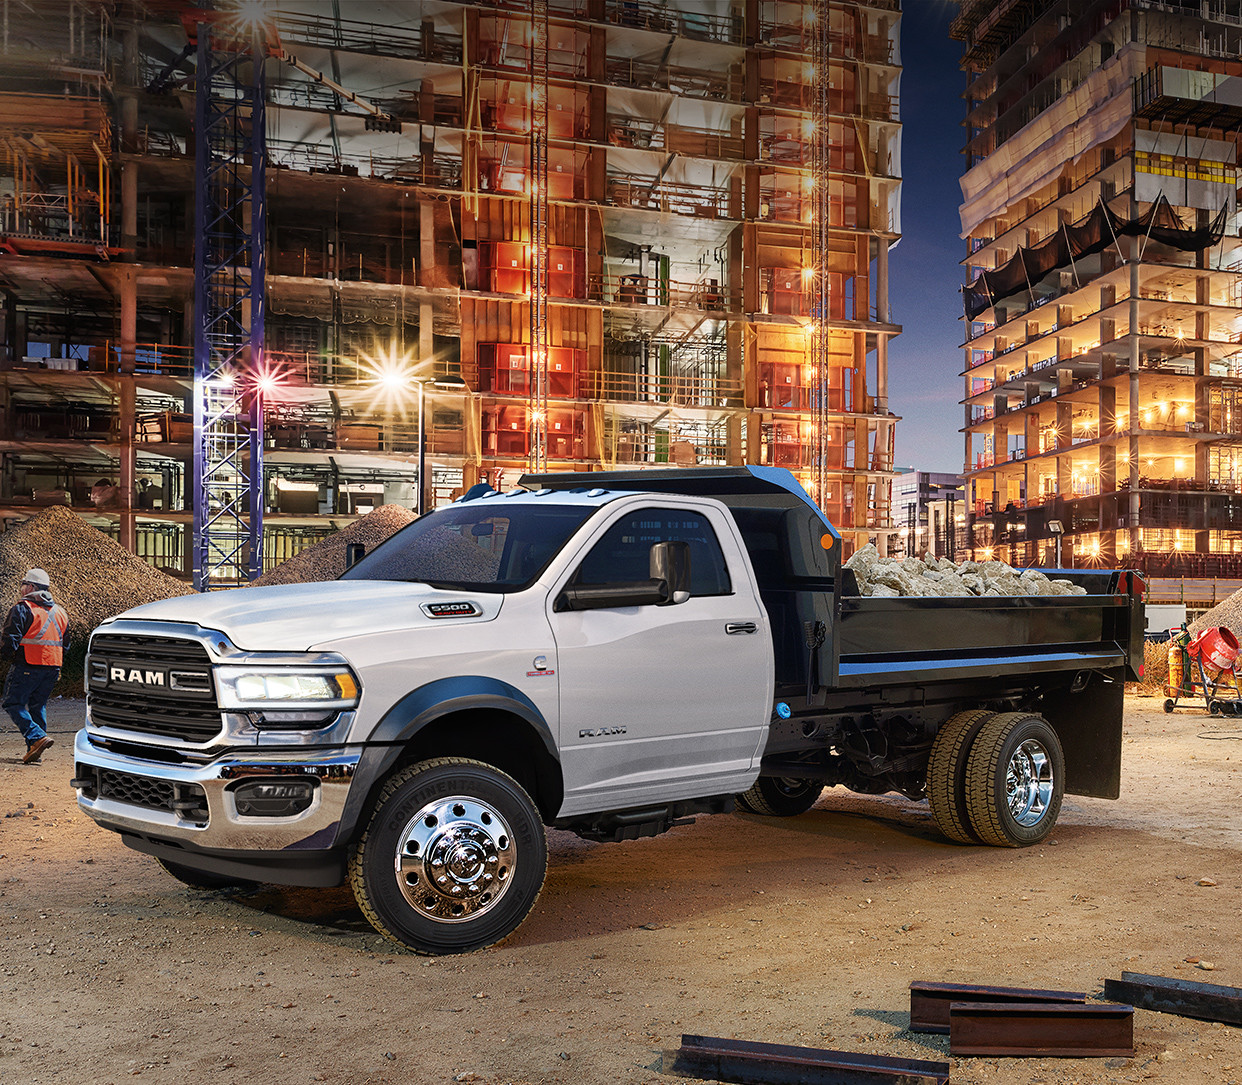 2019 Ram Chassis Cab exterior in white shown in front of a construction site.